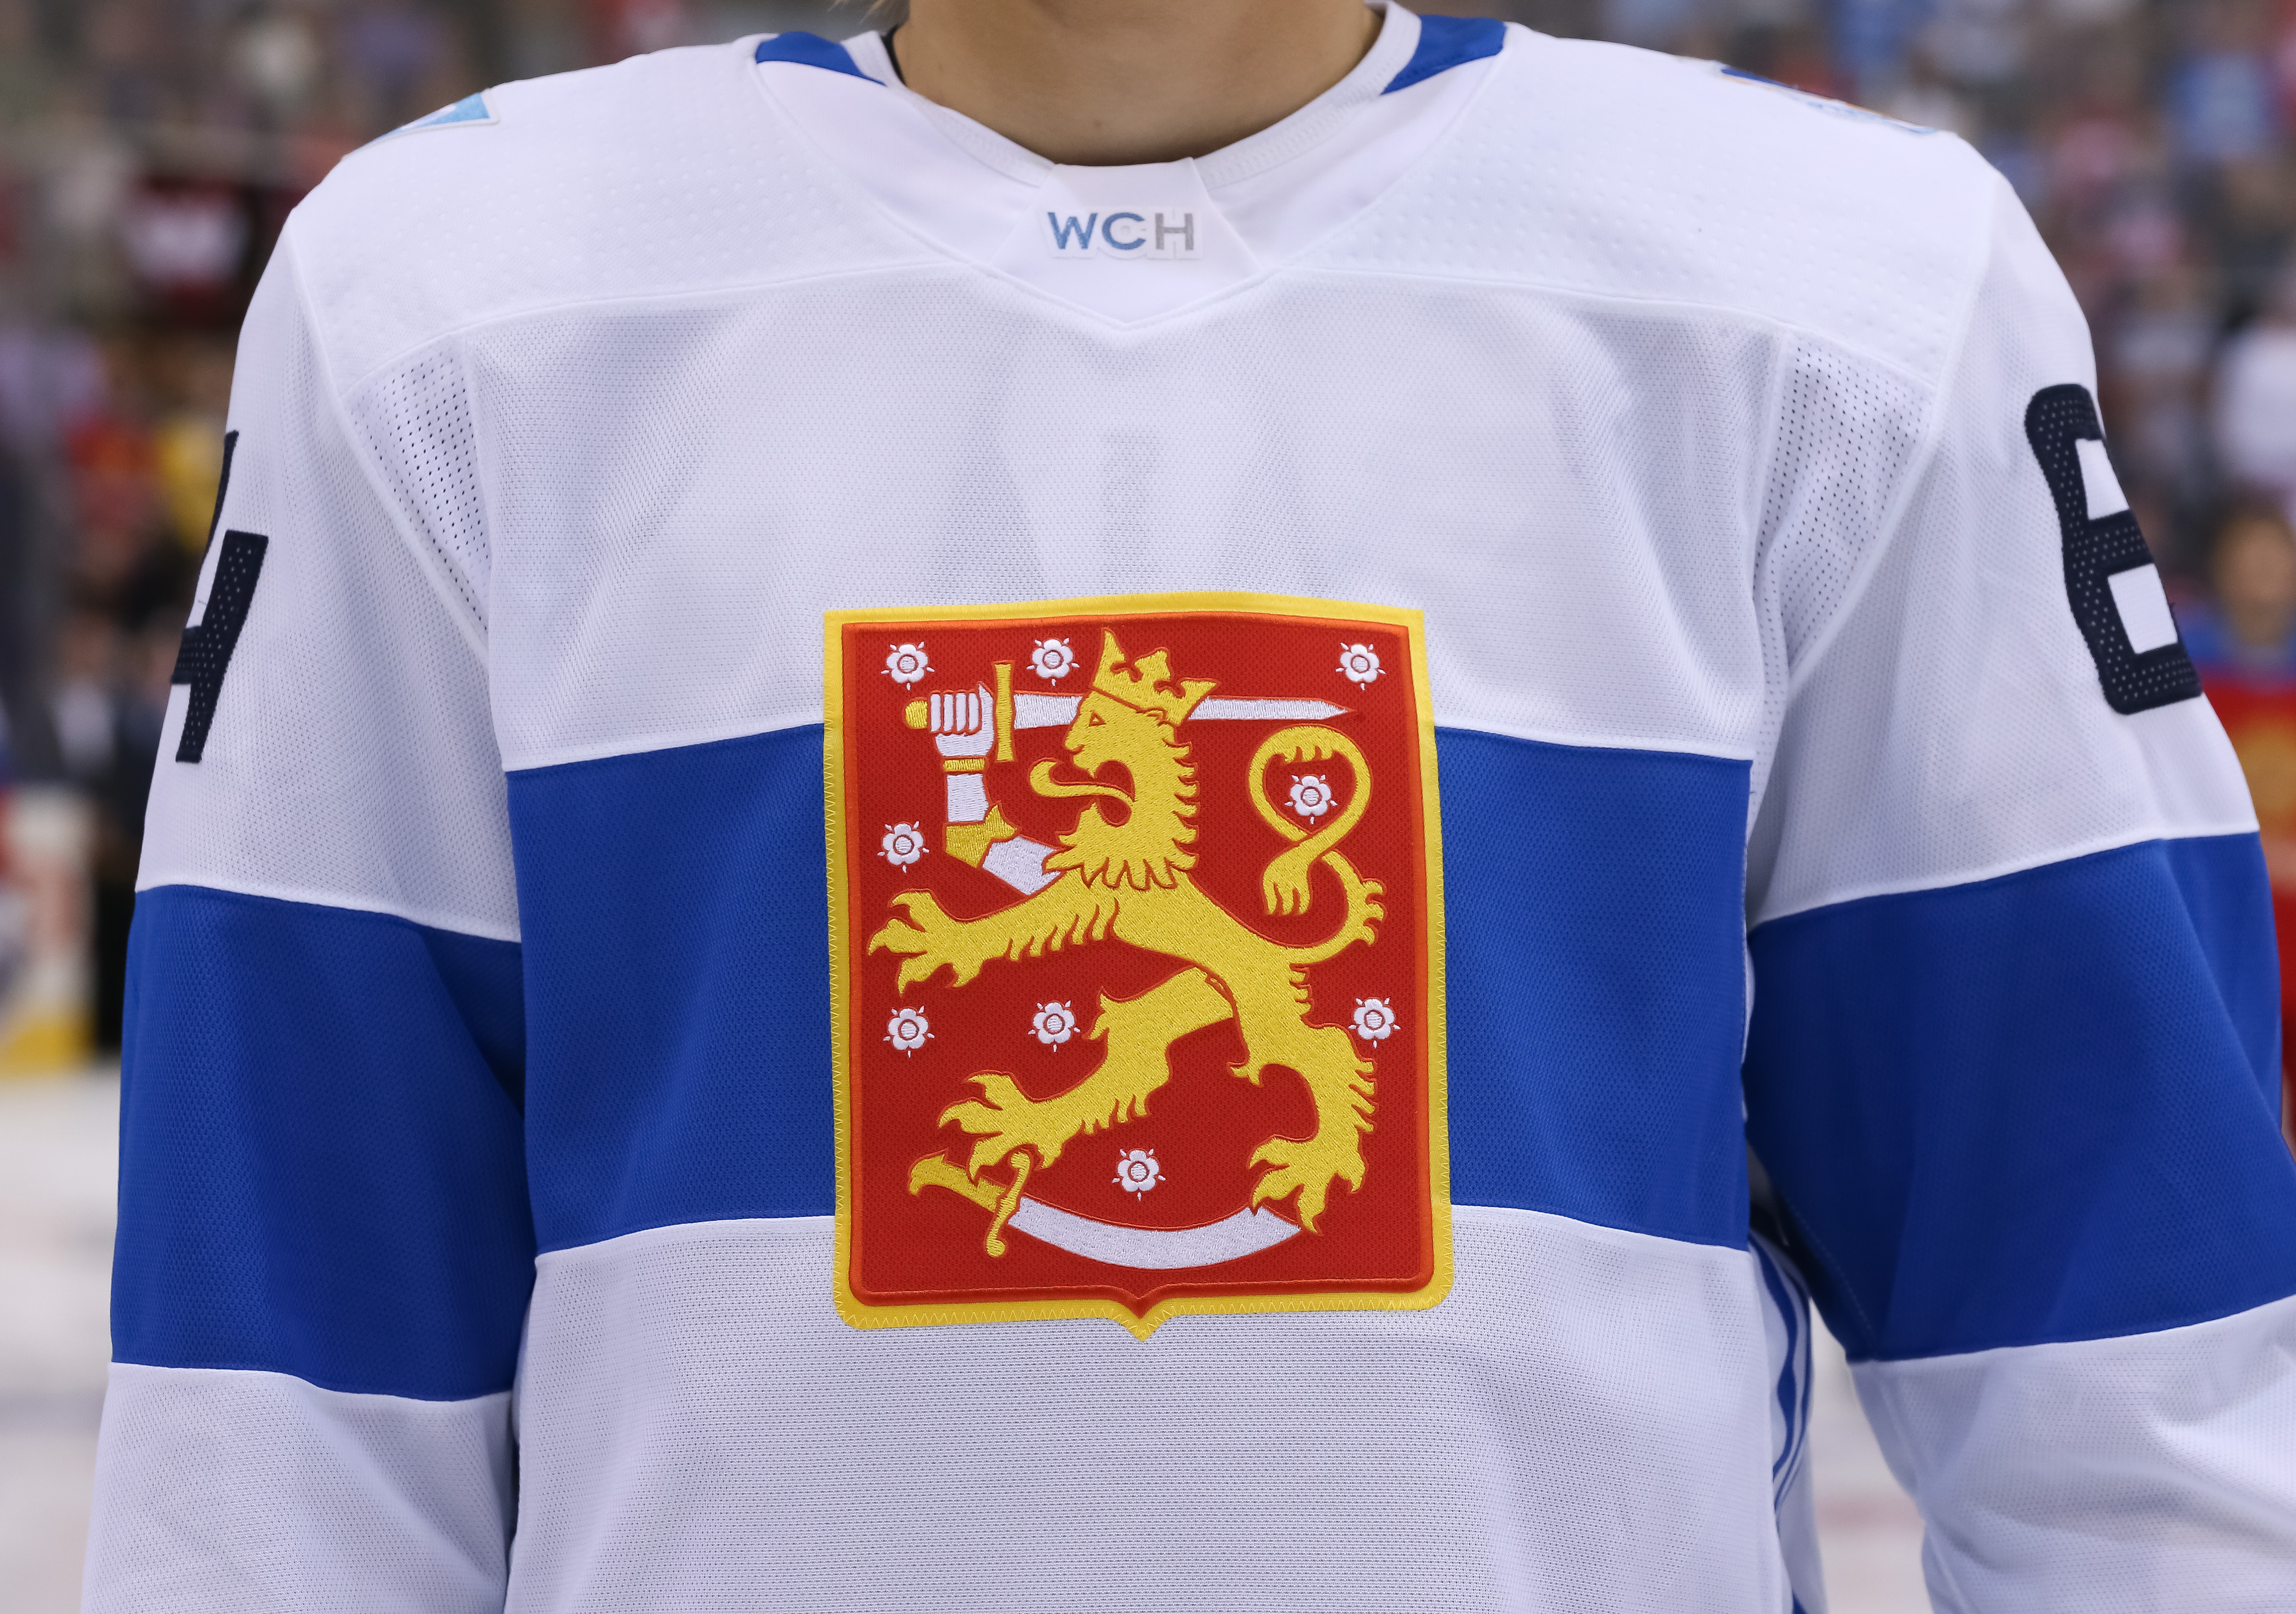 Tournament jersey for Team Finland prior to the game against Team Russia during the World Cup of Hockey 2016 at Air Canada Centre on September 22, 2016 in Toronto, Ontario, Canada.